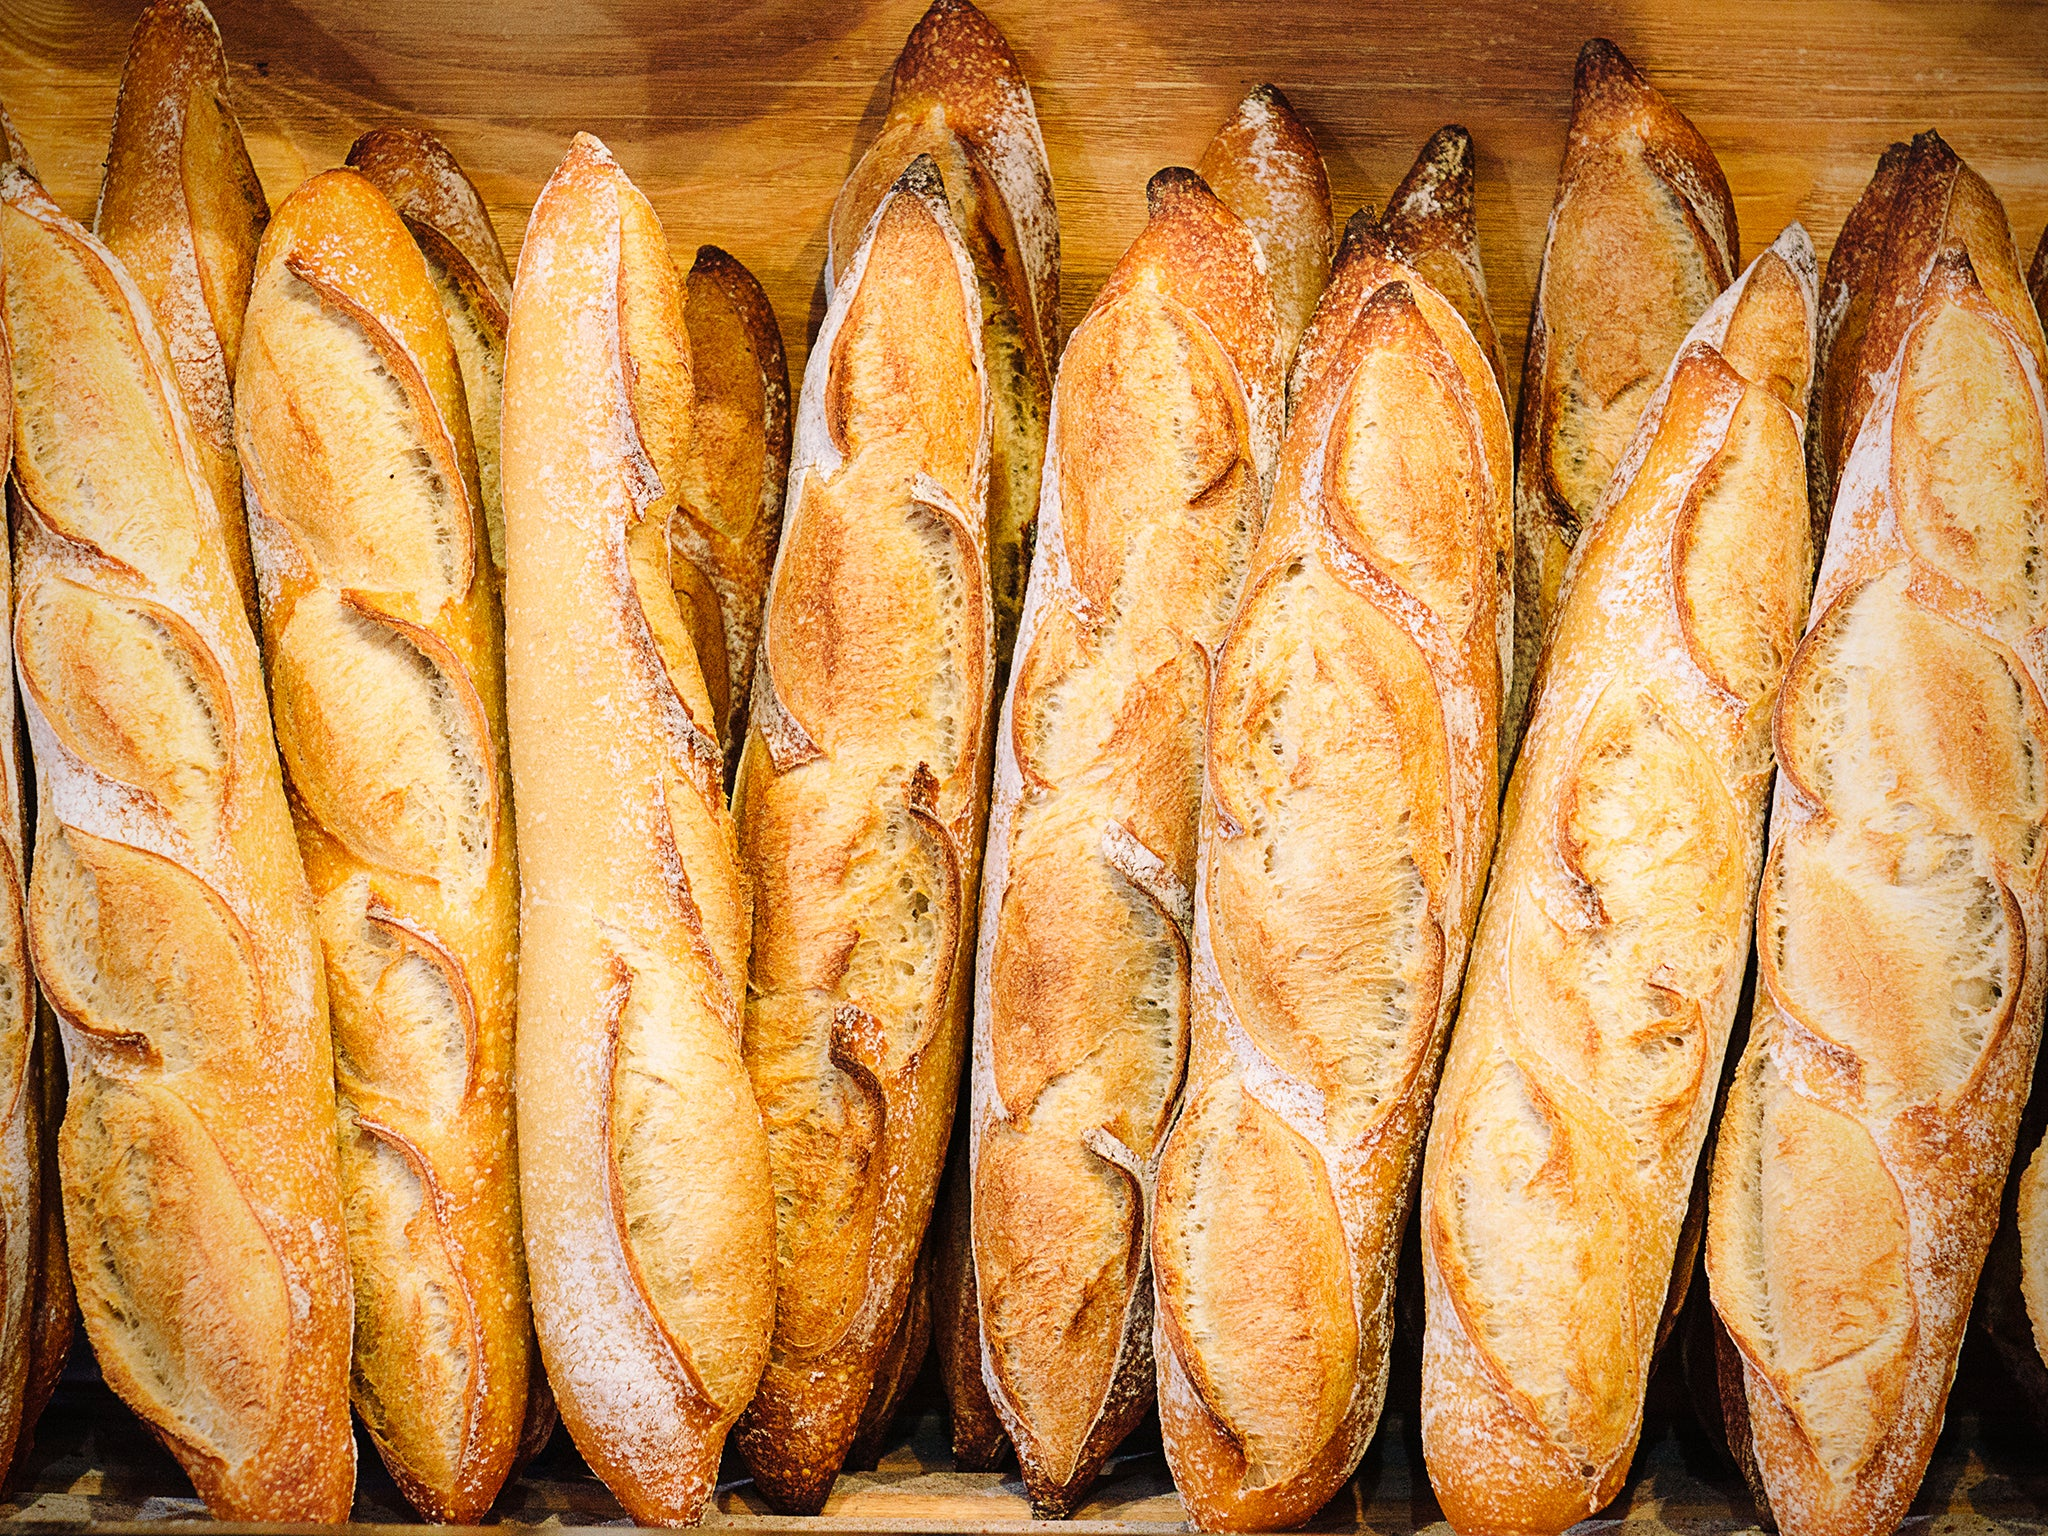 French People Losing Appetite For Baguettes The Independent Voucher Eric Kayser